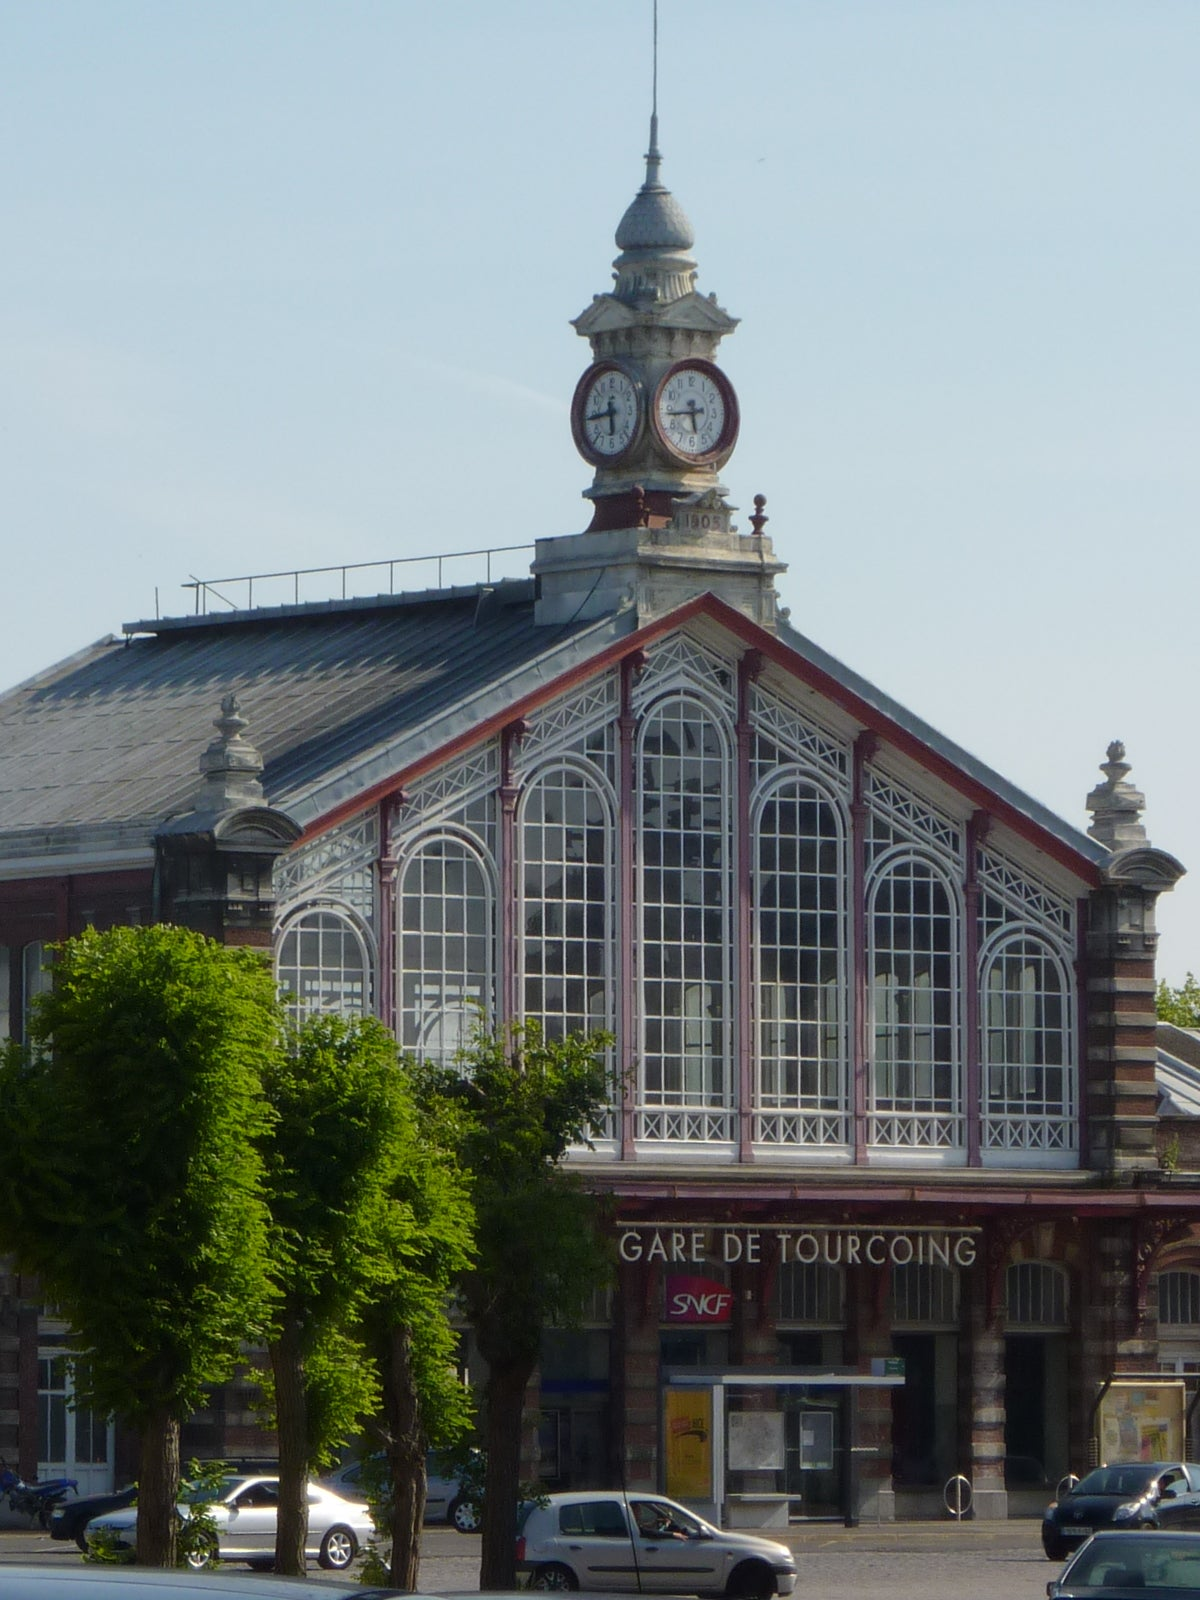 Tourcoing Train Station